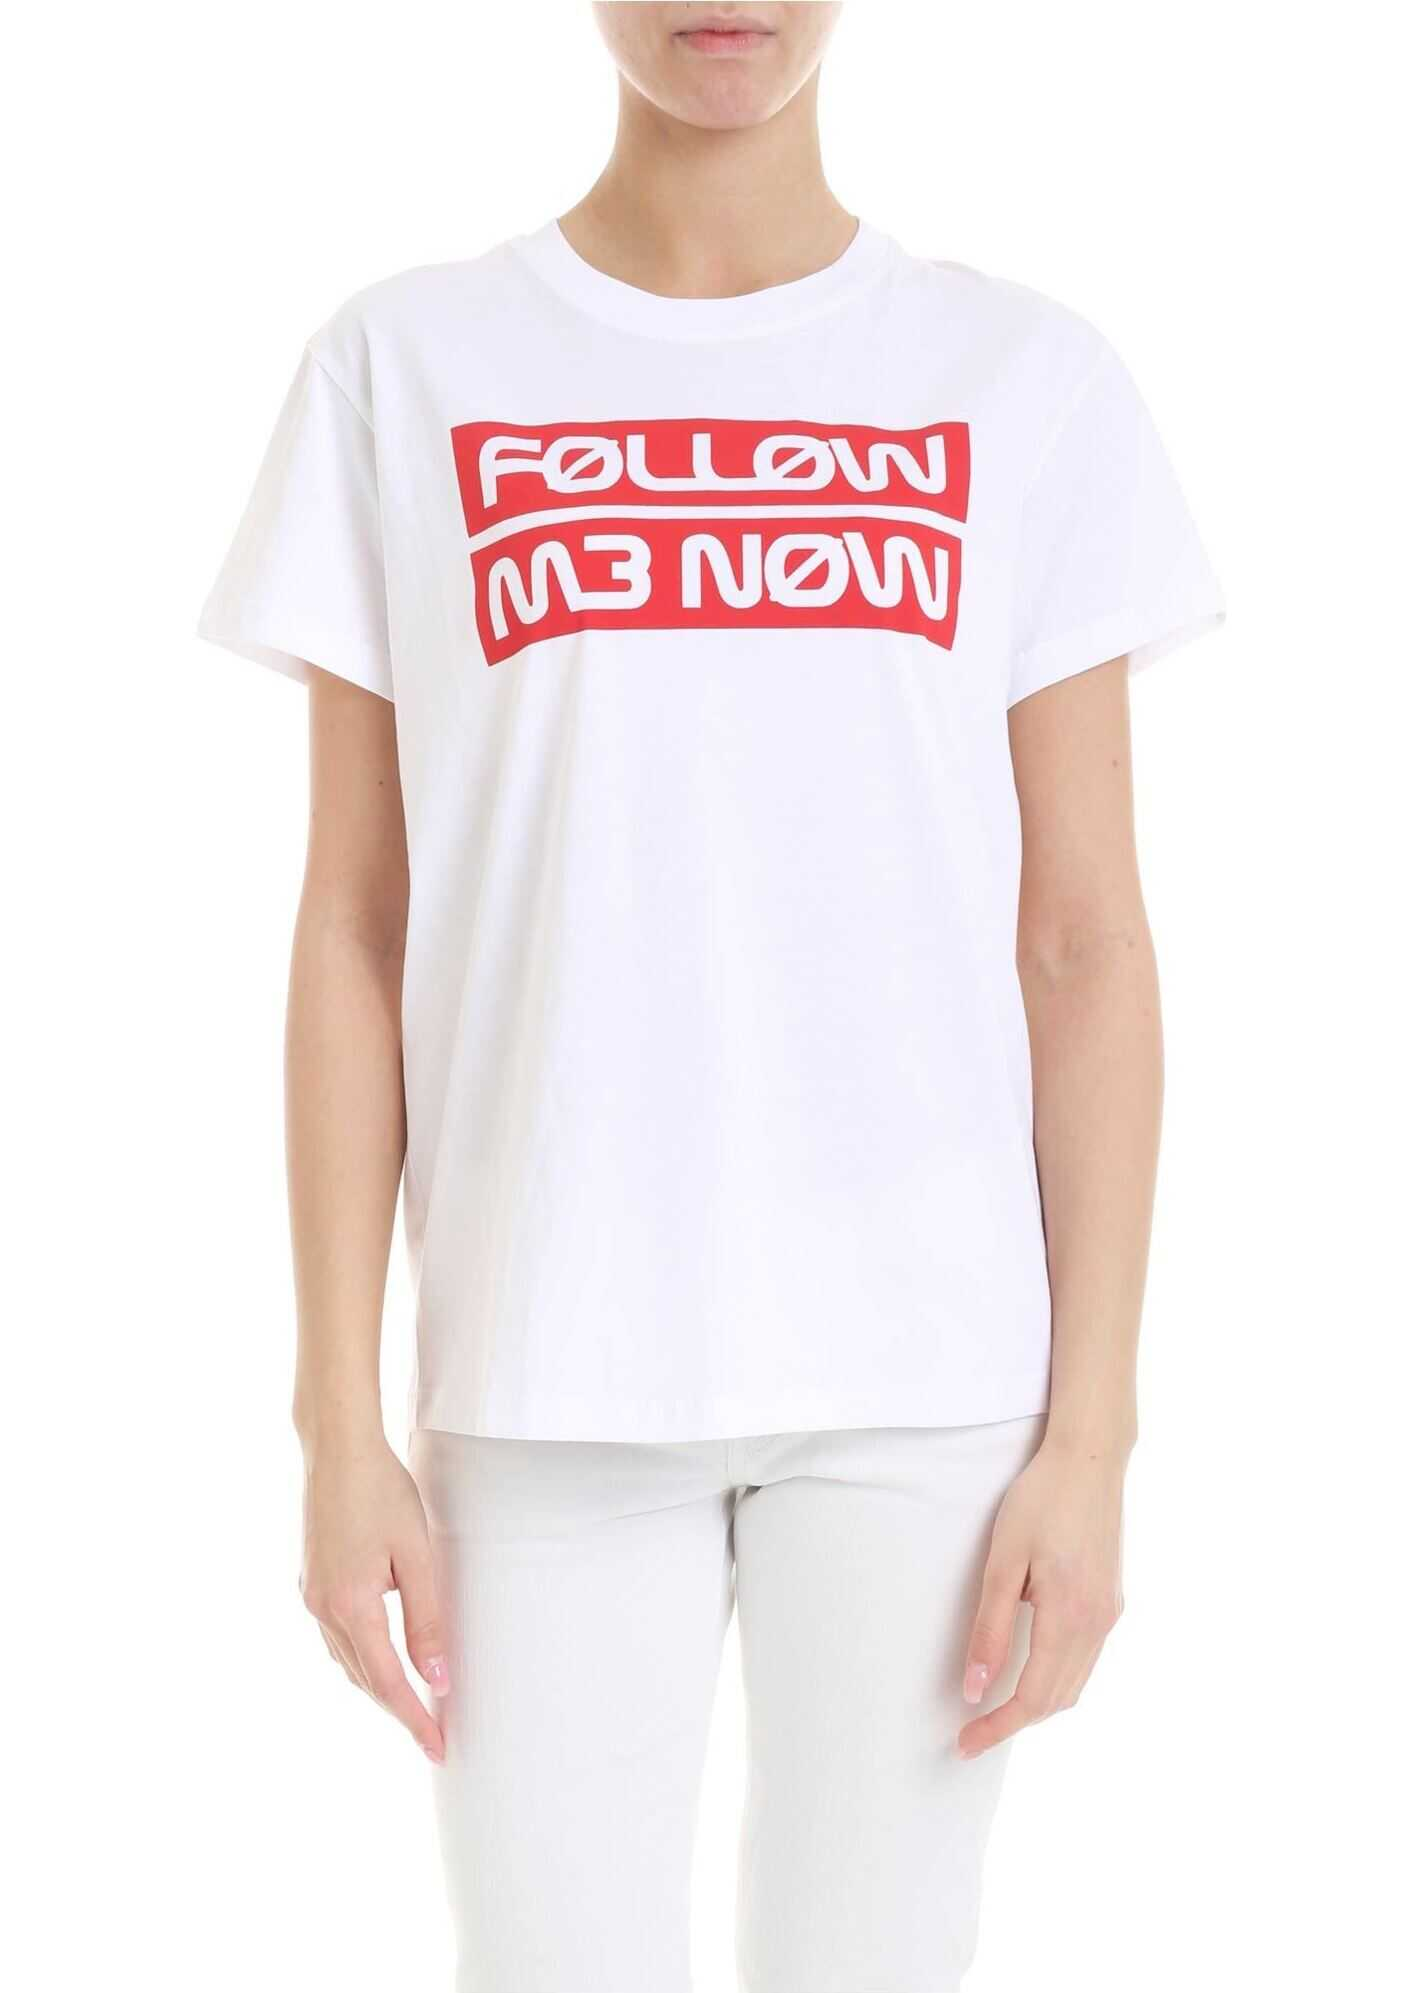 Follow Me Now T-Shirt In White